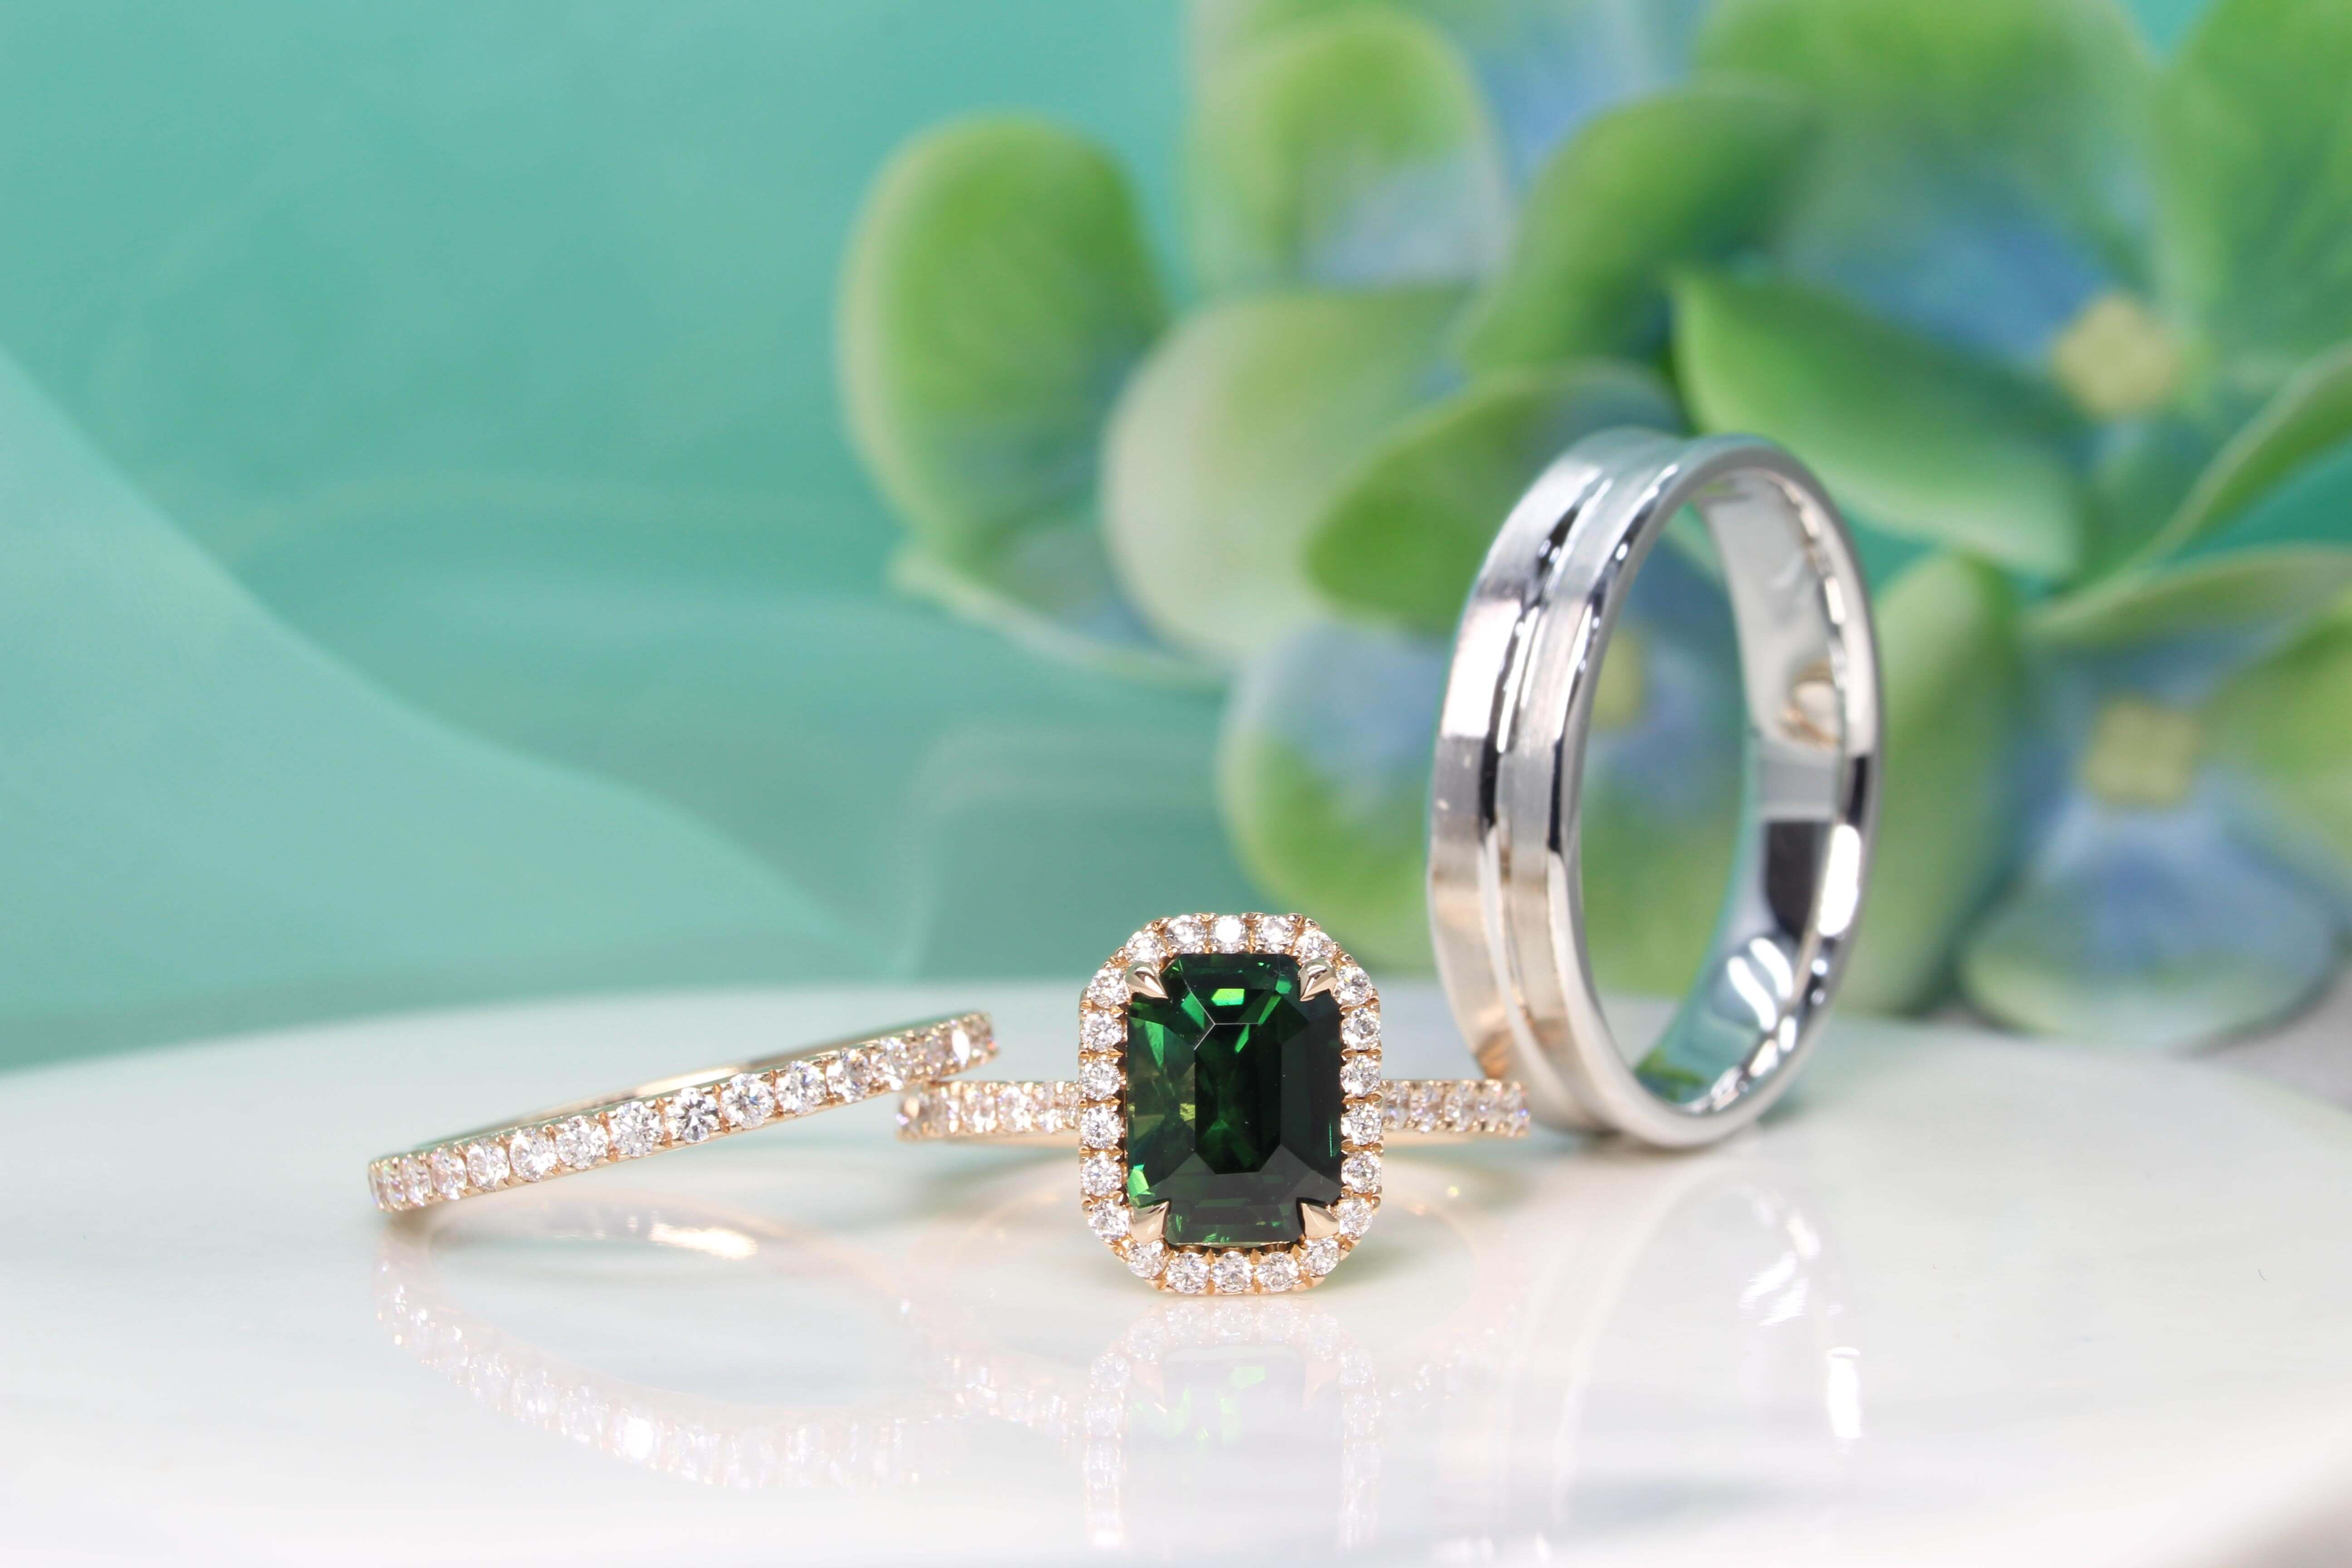 Teal Sapphire Wedding Rings, Blue green sapphire colour shade sapphire gemstone customised with halo diamond. Wedding bands is crafted in platinum gold and rose gold diamond bands   Local Singapore Custom made Jeweller in unheated sapphire gemstone and wedding jewellery